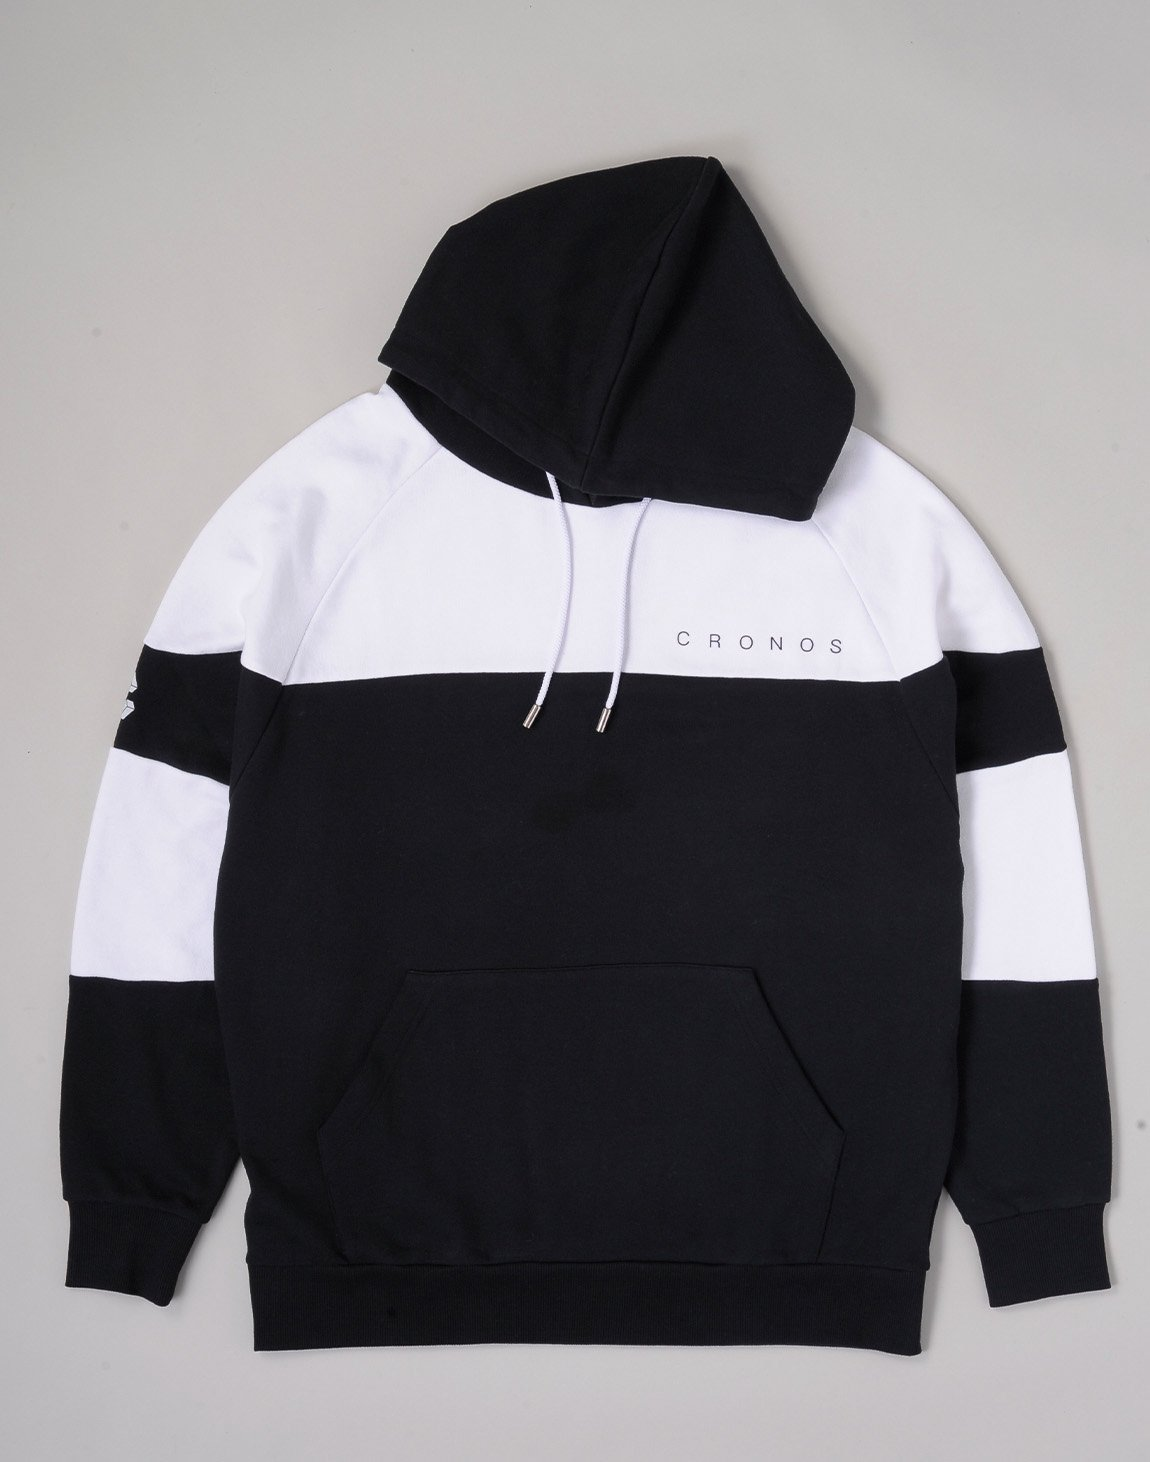 <img class='new_mark_img1' src='https://img.shop-pro.jp/img/new/icons1.gif' style='border:none;display:inline;margin:0px;padding:0px;width:auto;' />CRONOS CUT BACK BASIC HOODIE【BLACKxWHITE】